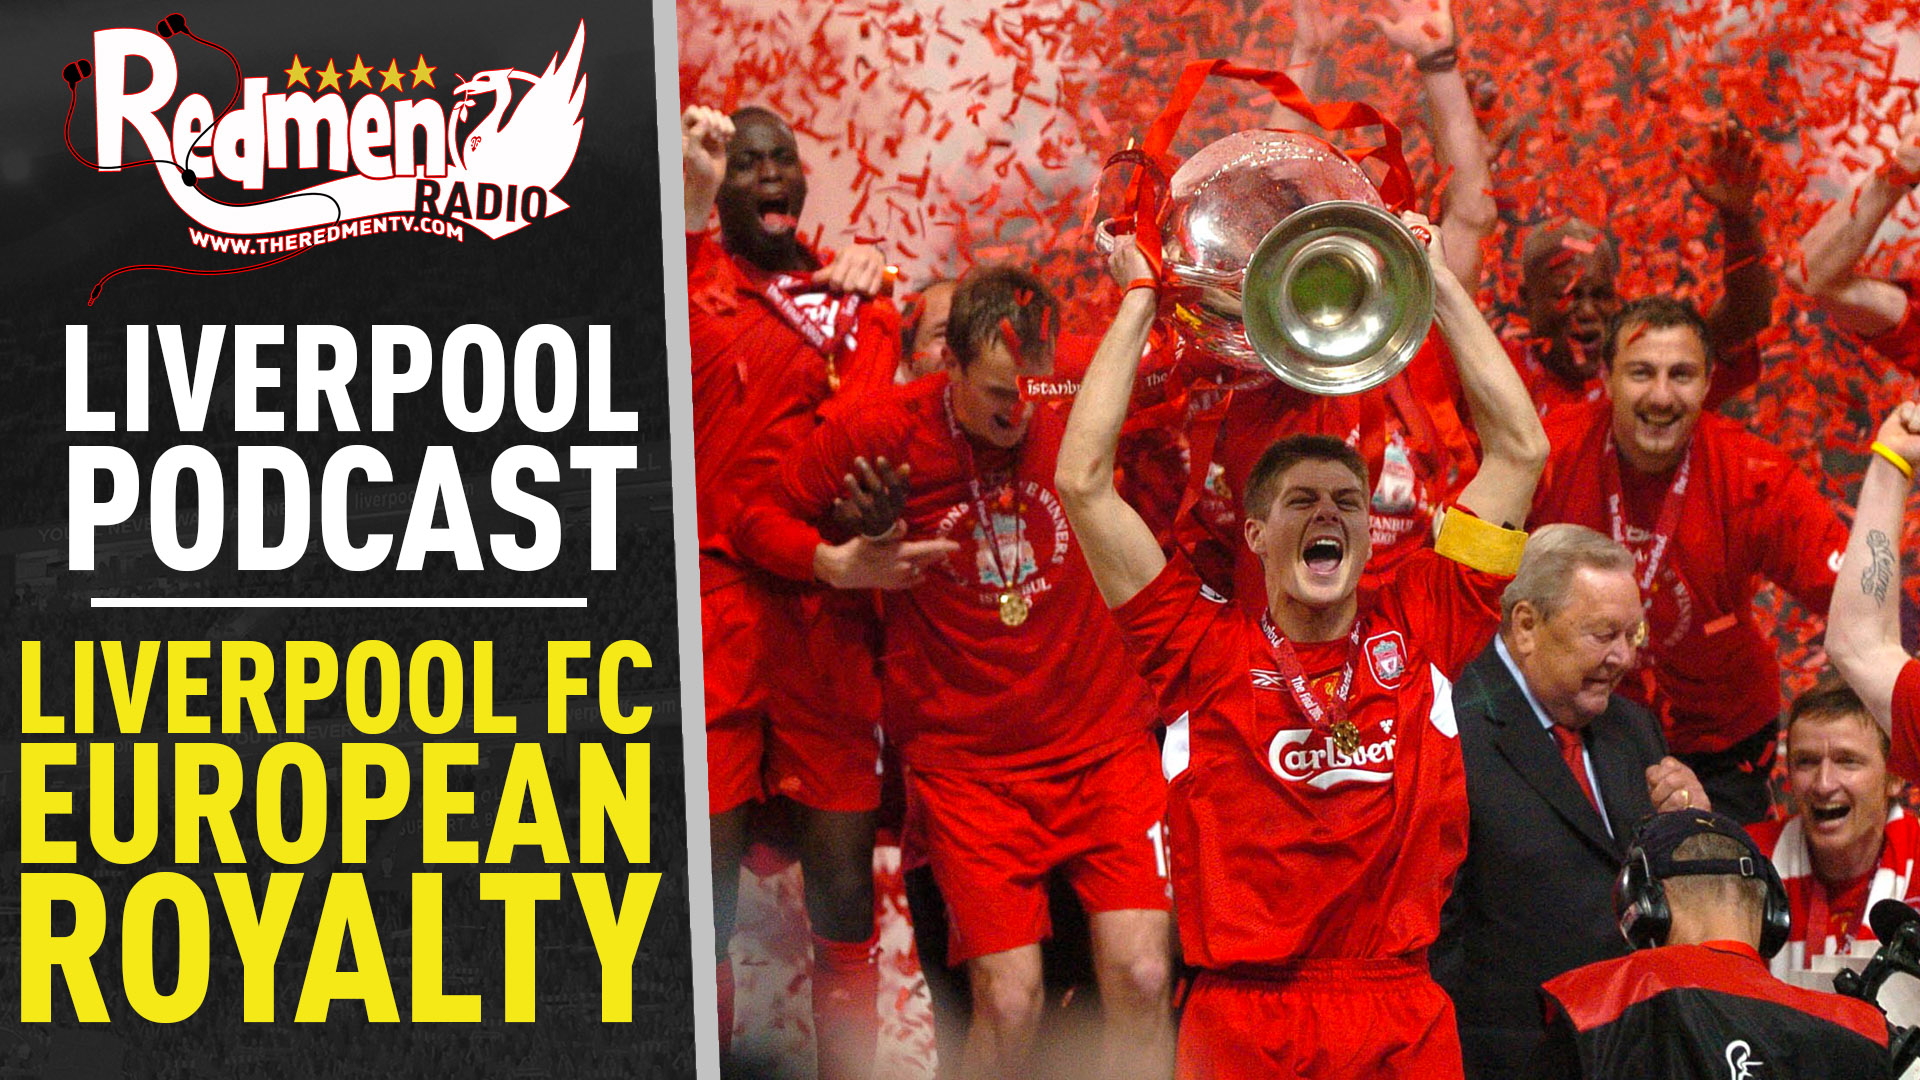 🎧 LIVERPOOL FC: EUROPEAN ROYALTY | LIVERPOOL FC PODCAST